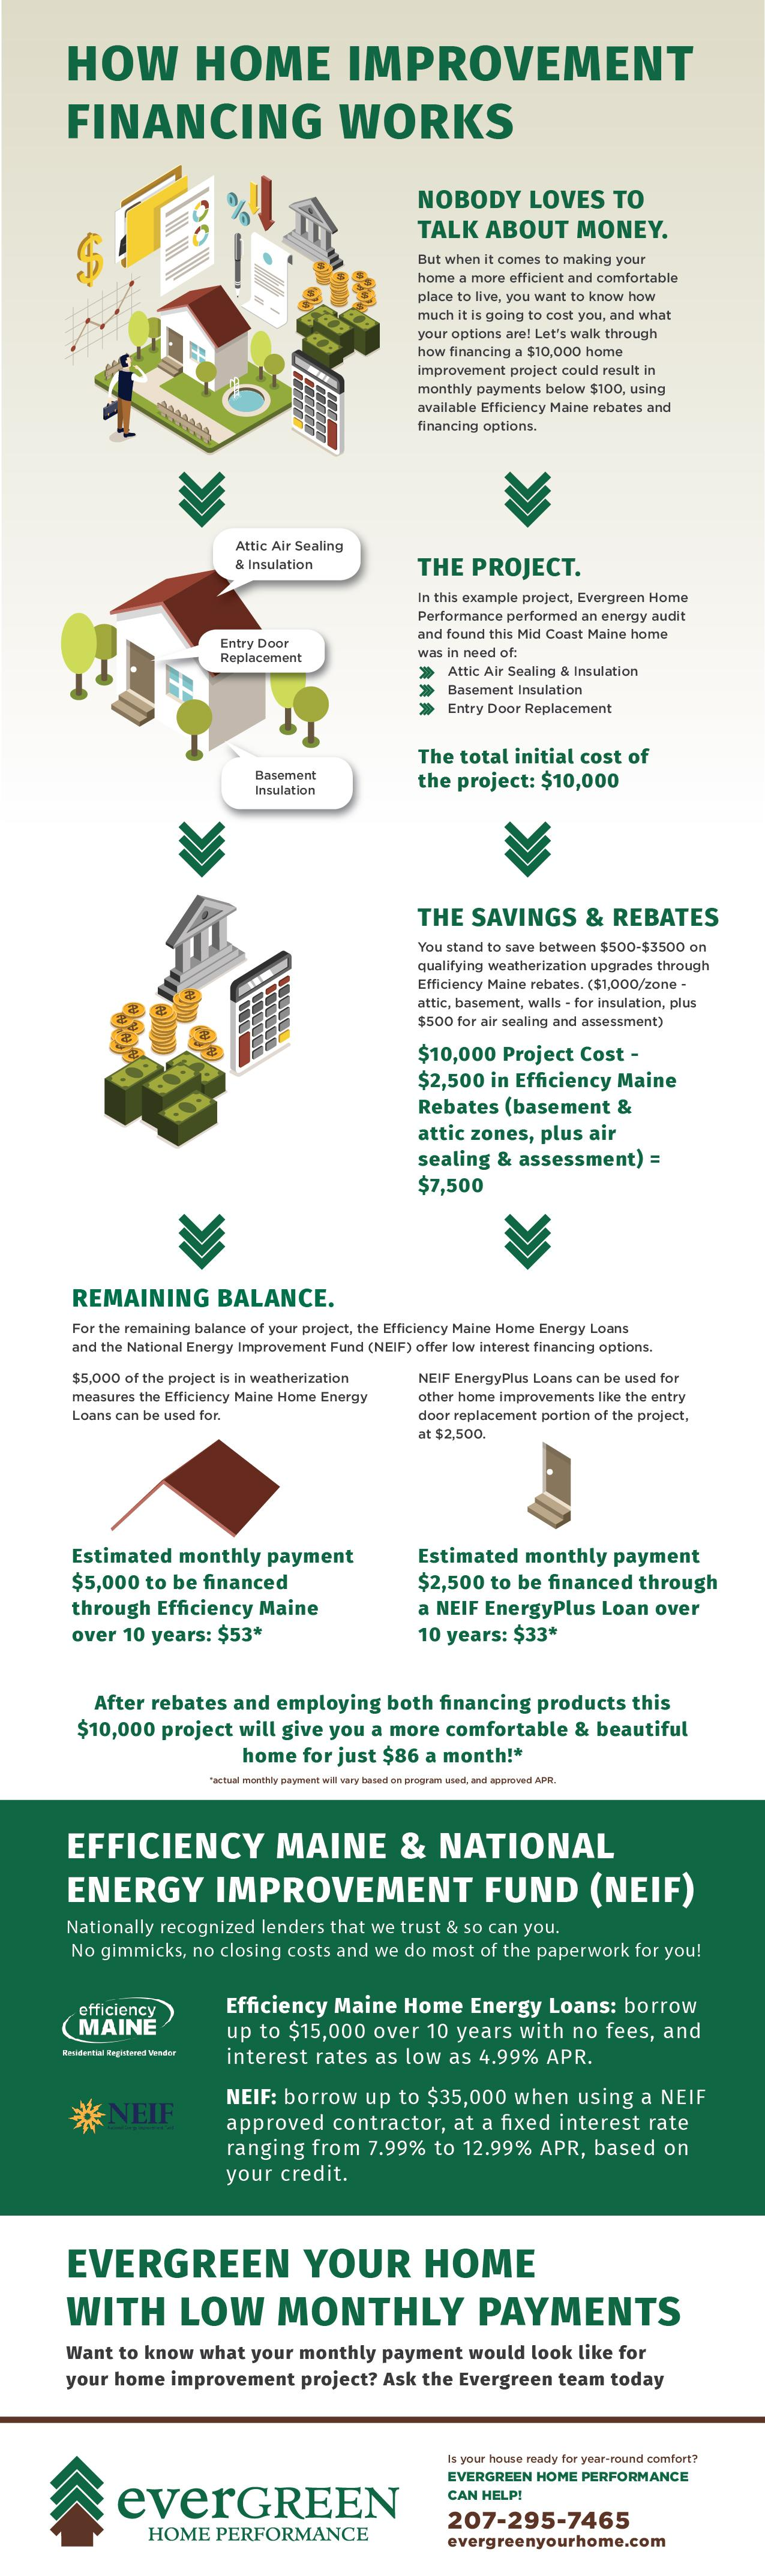 how home improvement financing works infographic at Evergreen